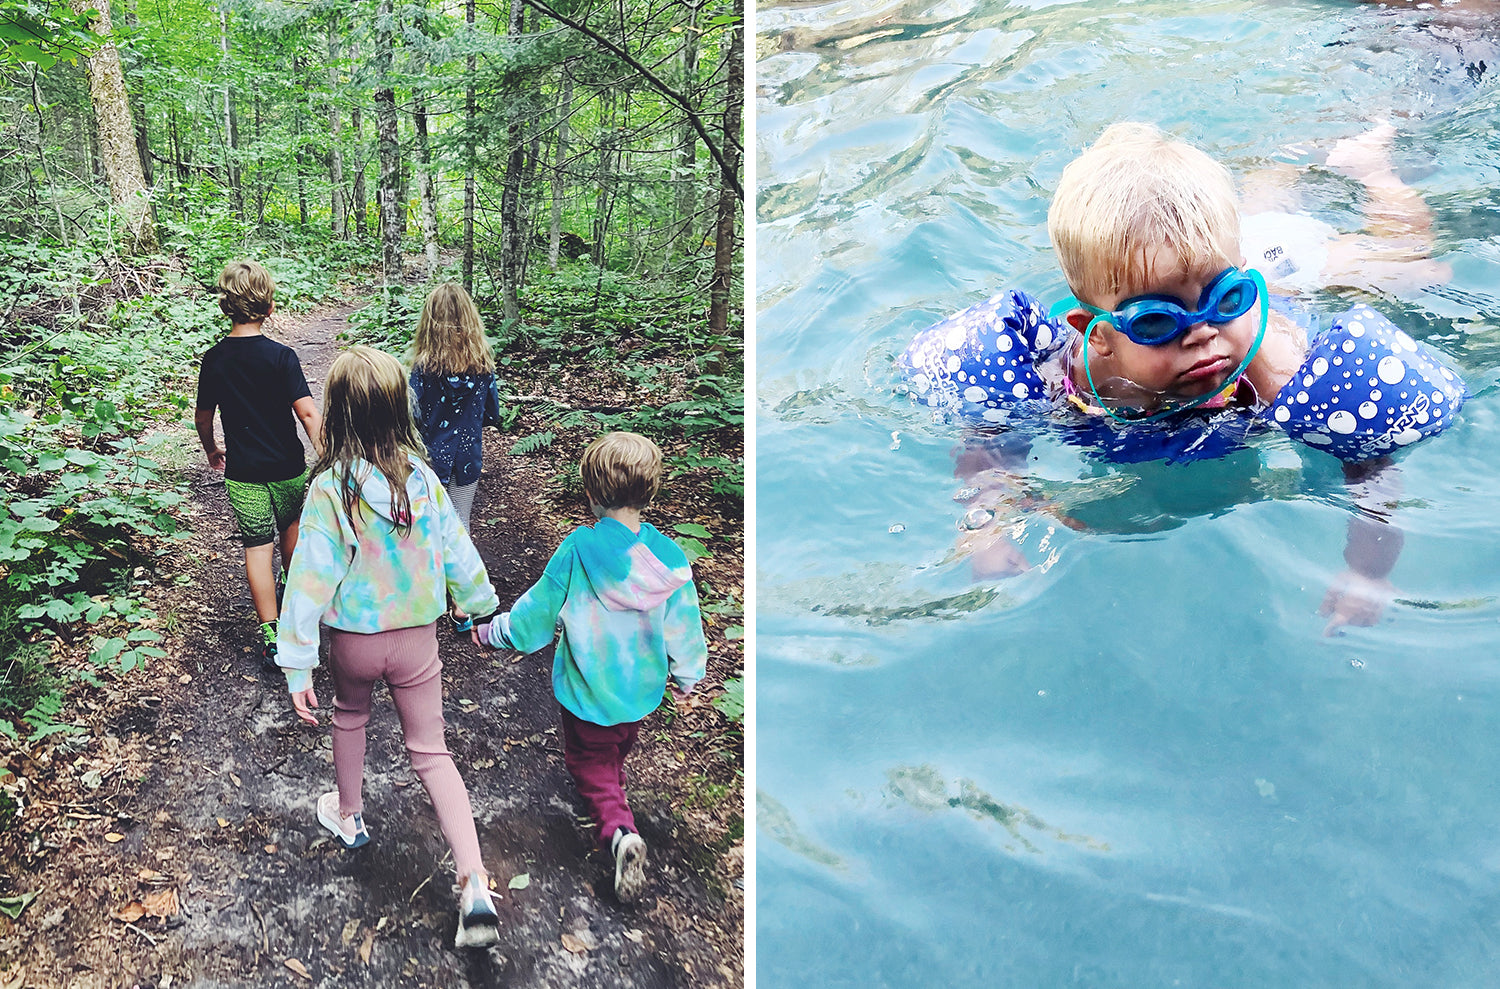 pictures of our families from this week on a hike and in the pool.